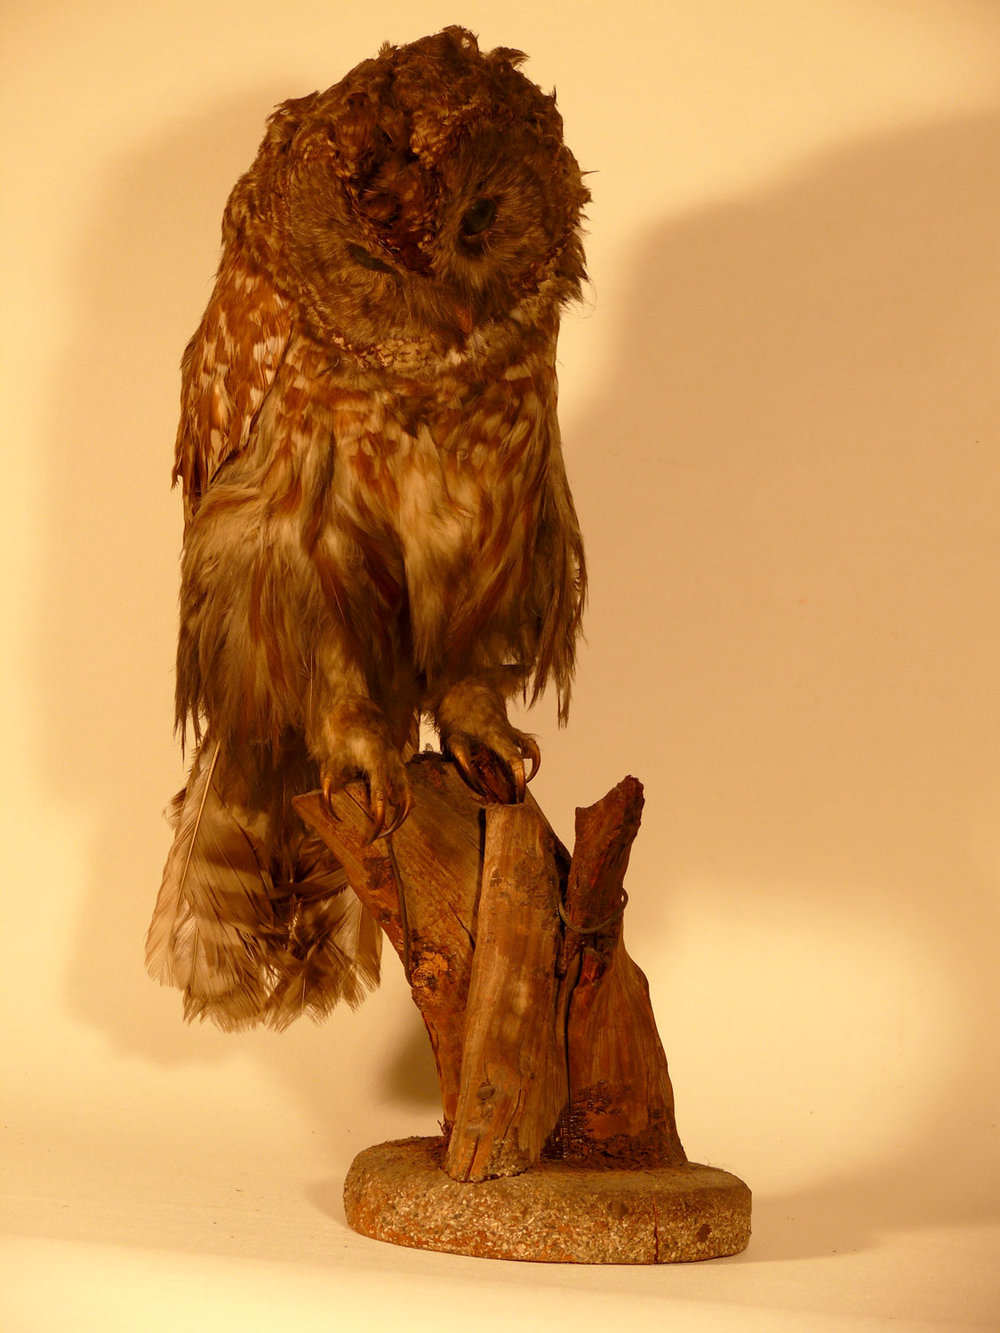 "Stuffed owl peering downward / 18"" height x 6.5"" diameter / old beauty"